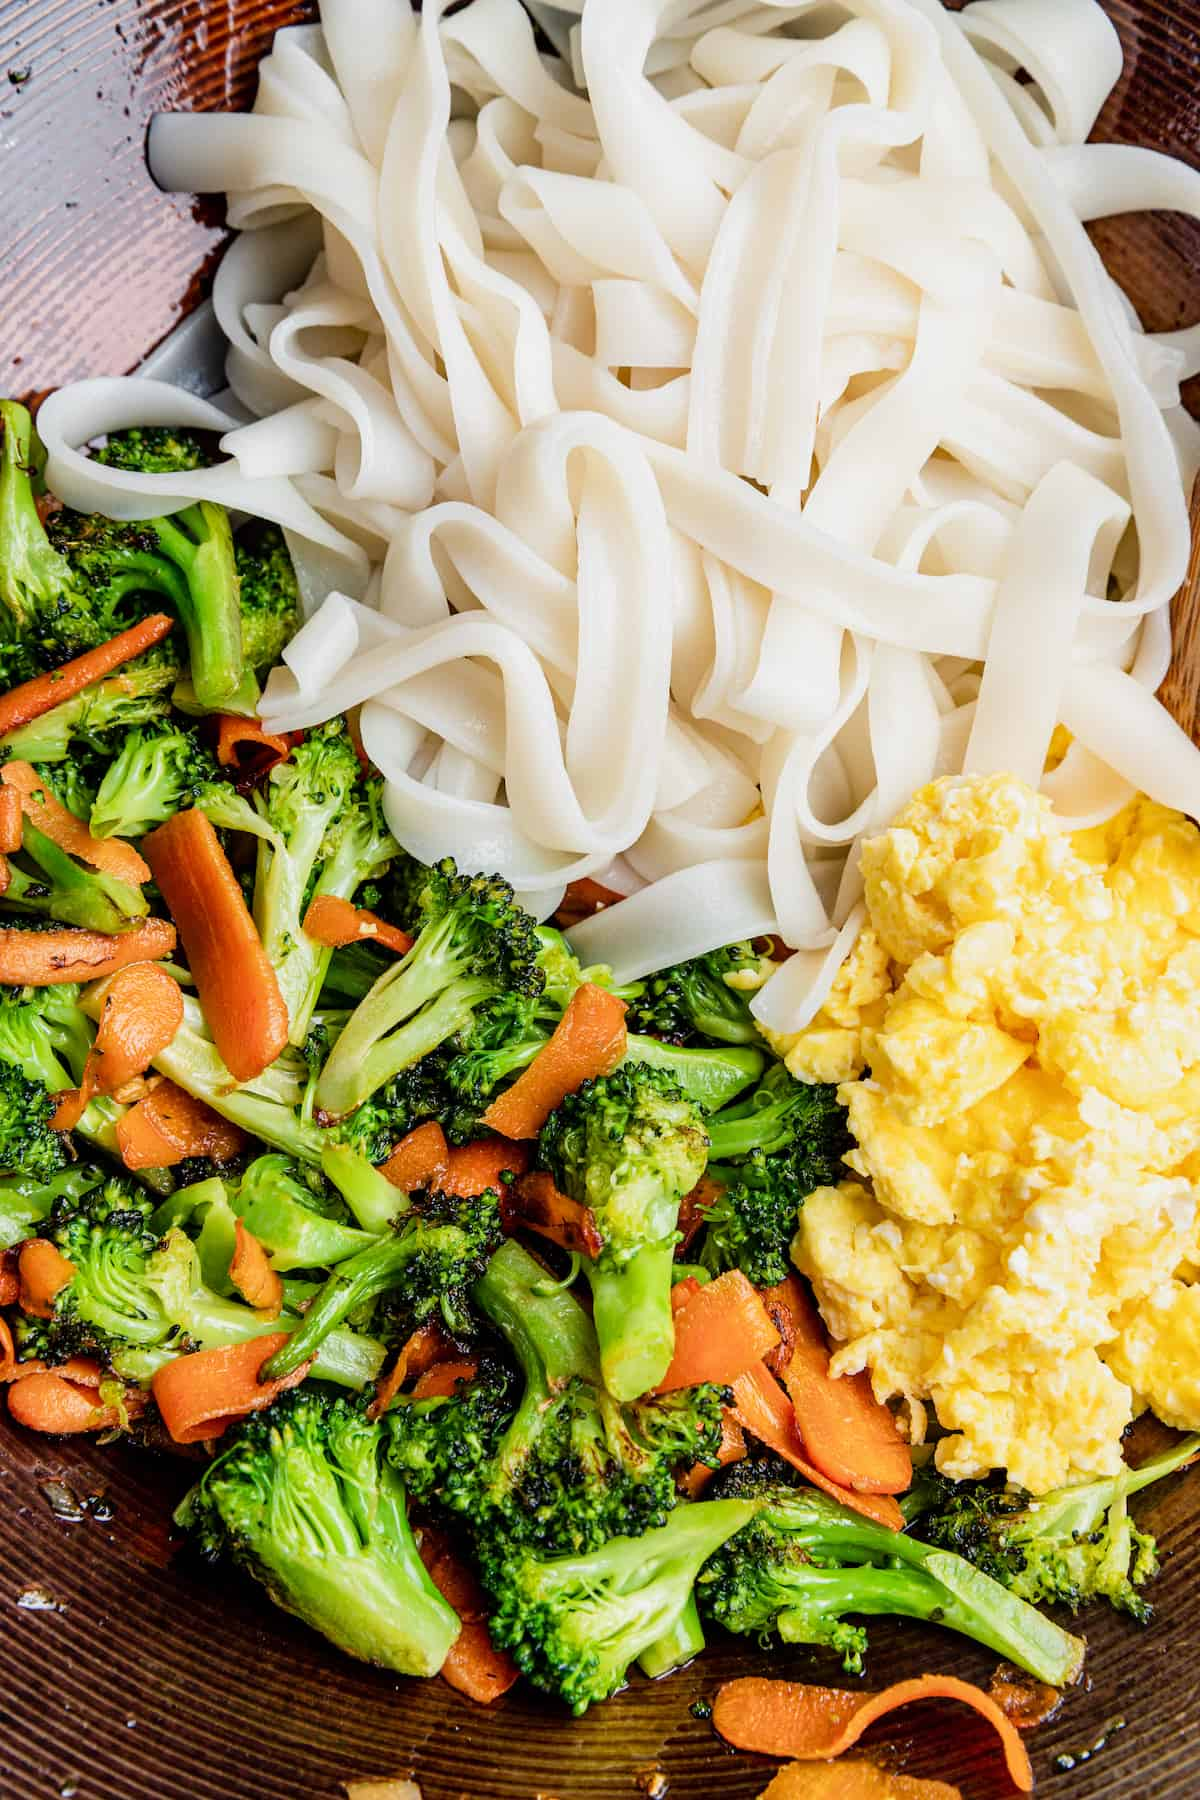 A Bowl of Cooked Rice Noodles, Eggs and Vegetables